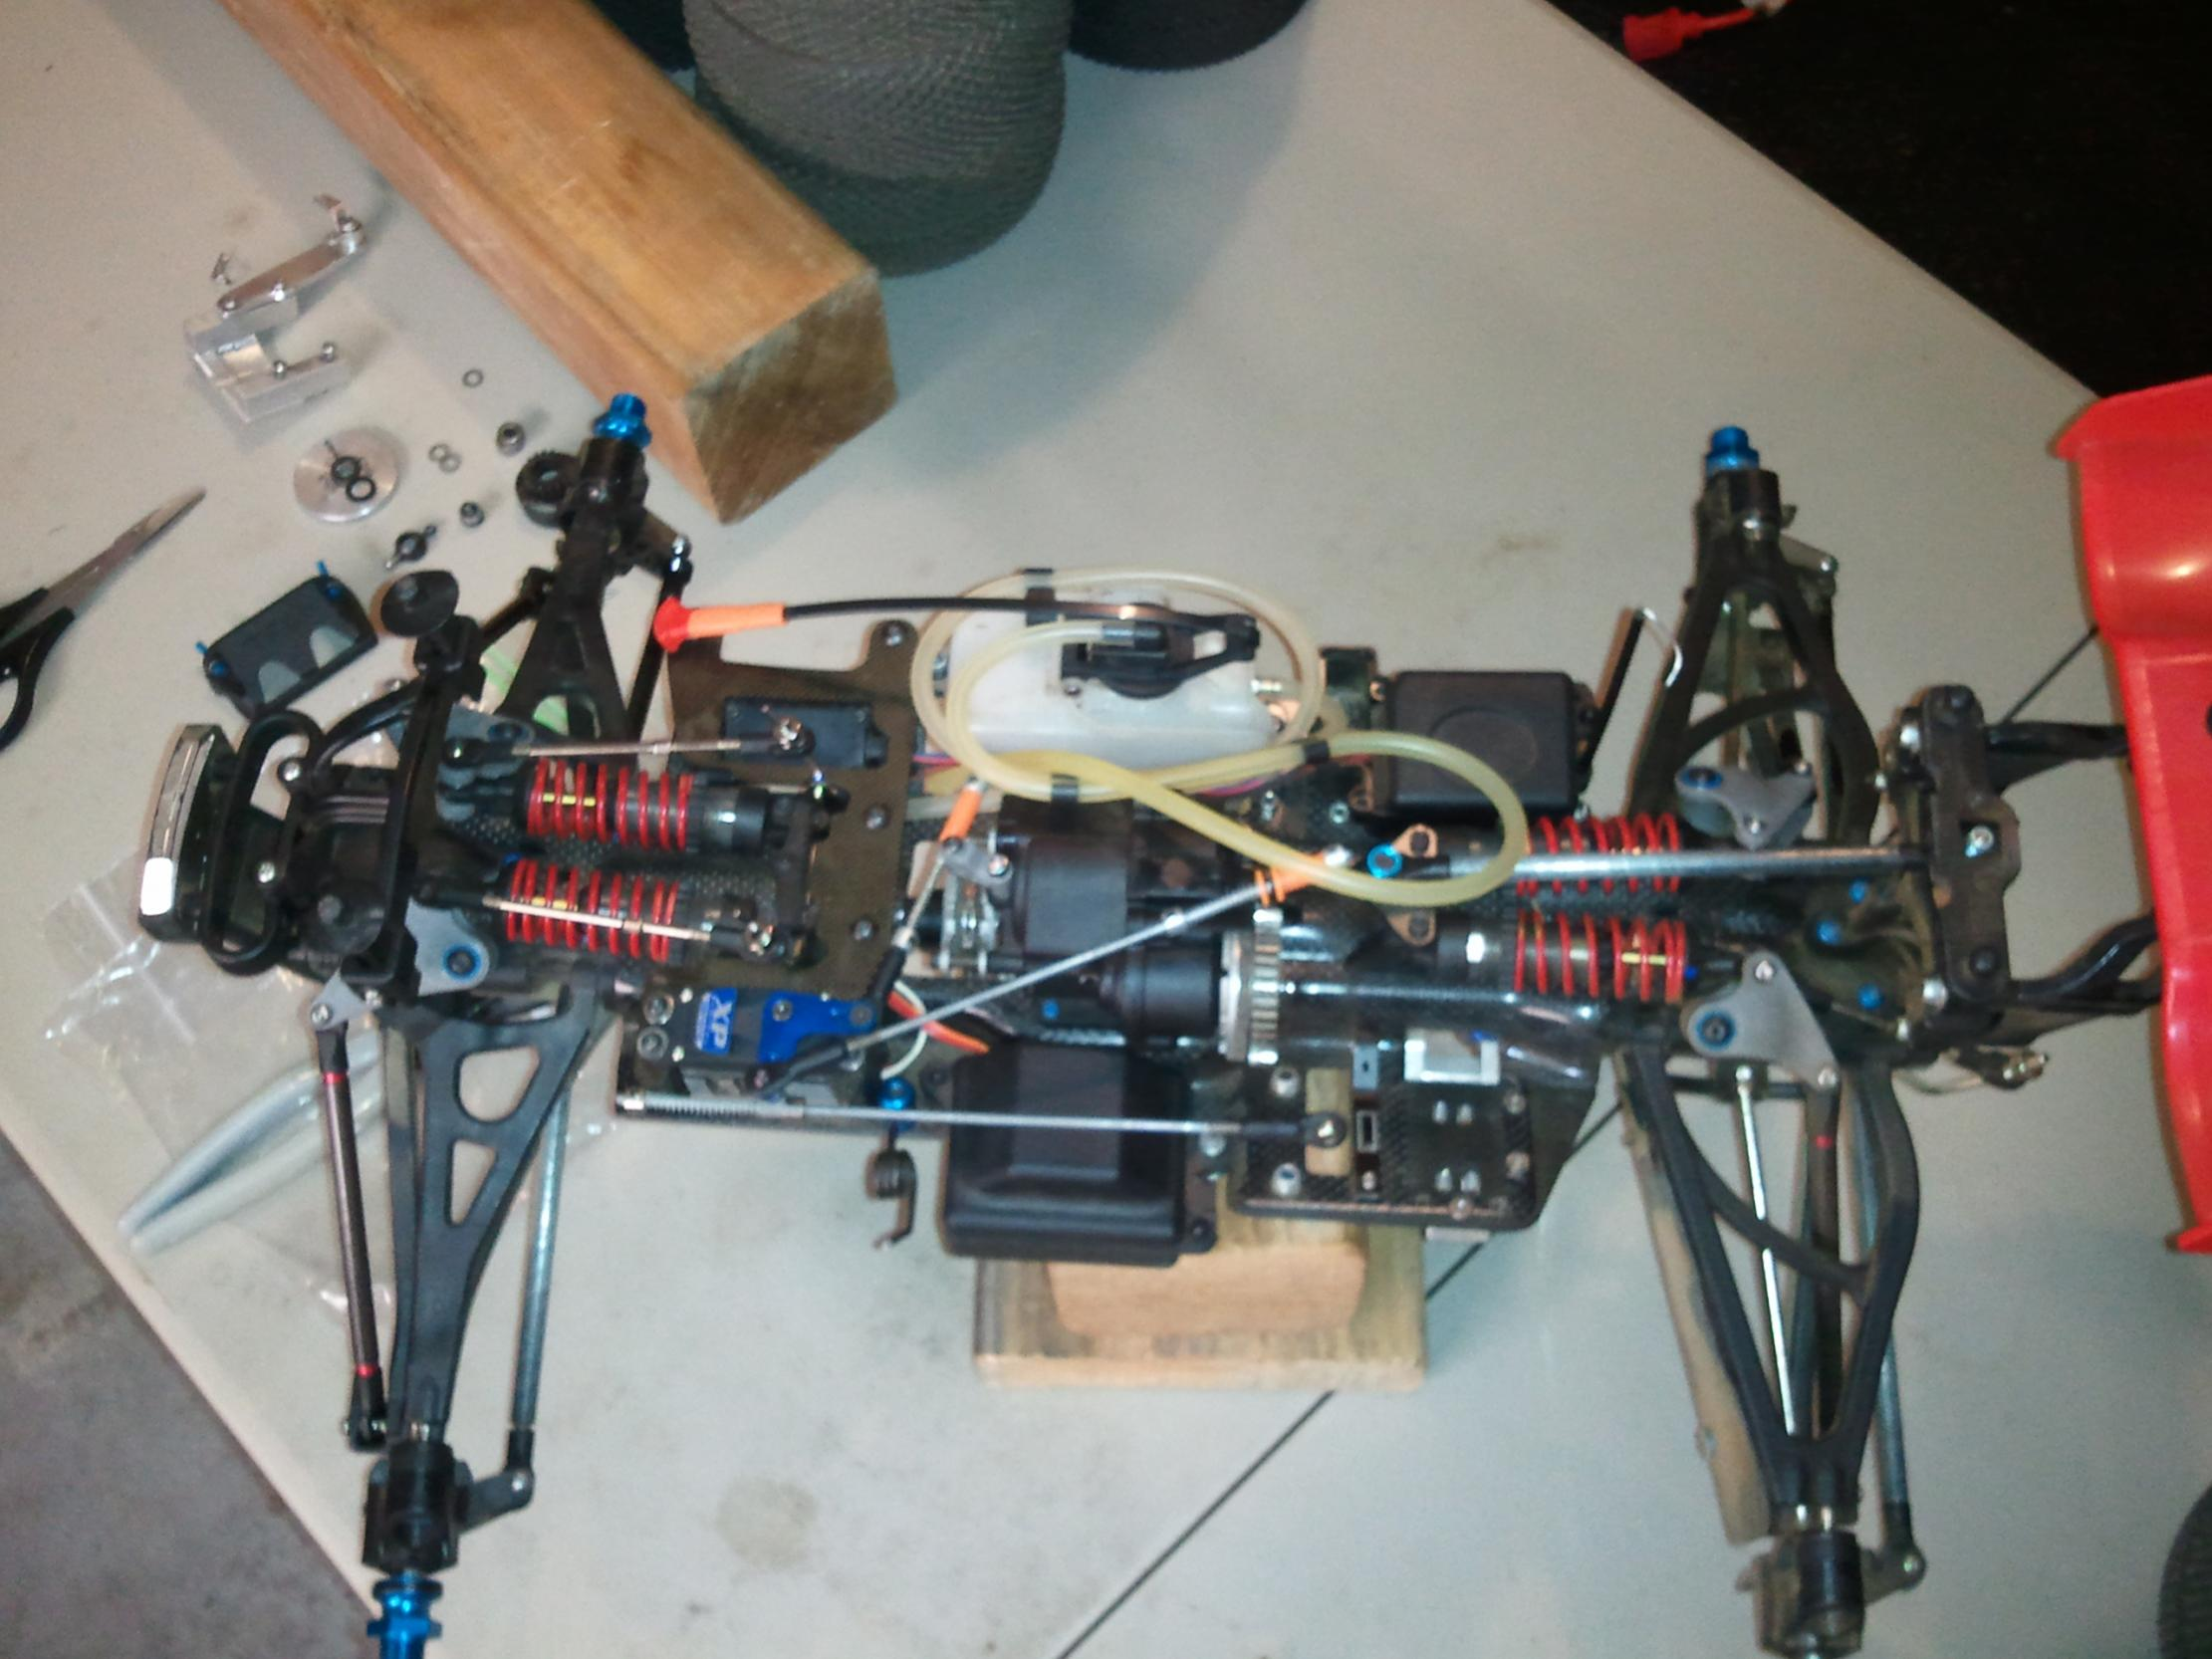 Revo 3.3 upgrades for race? - R/C Tech Forums